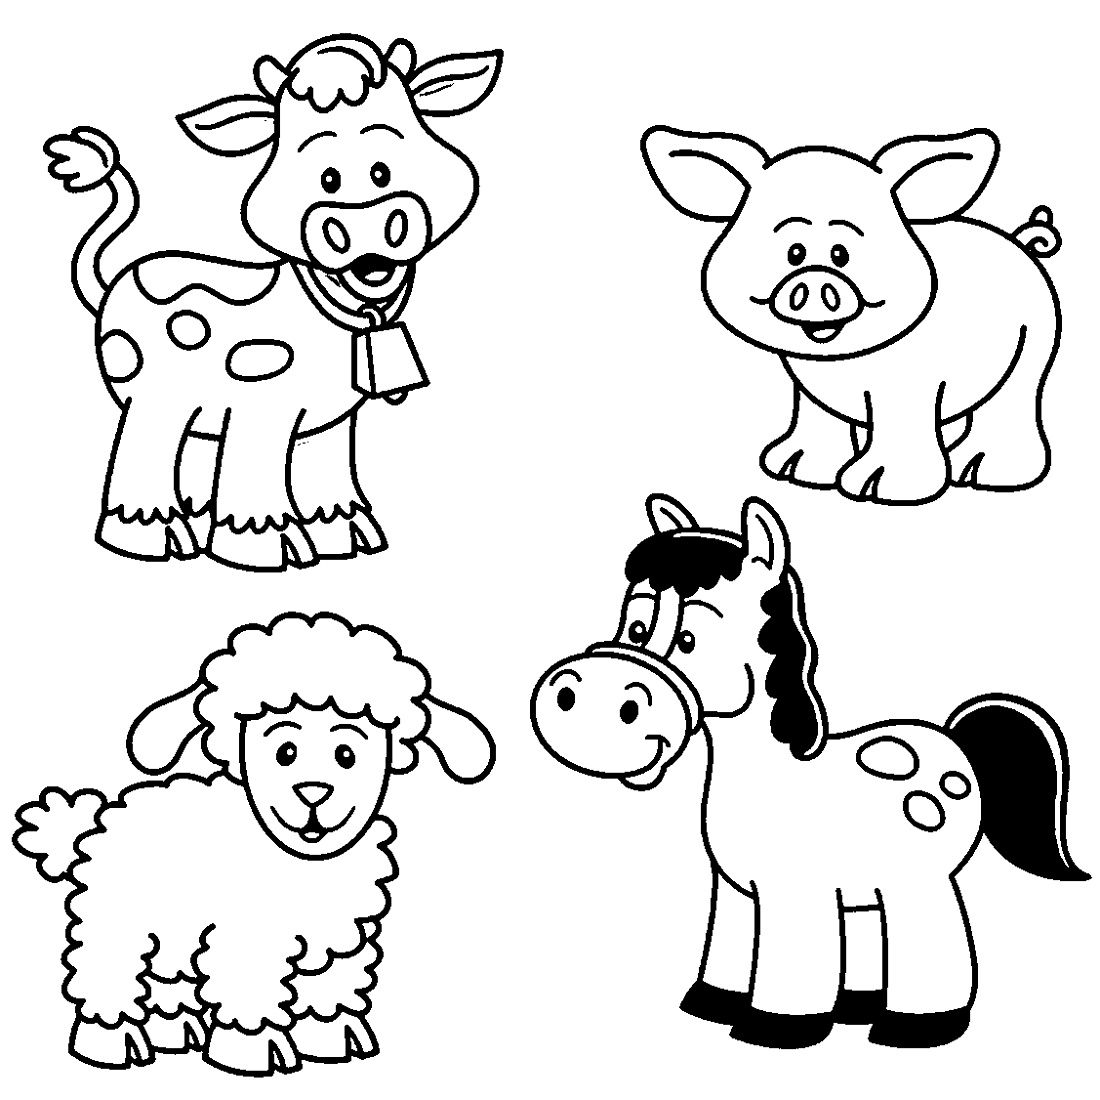 Printable Farm Animal Coloring for Kindergarten K5